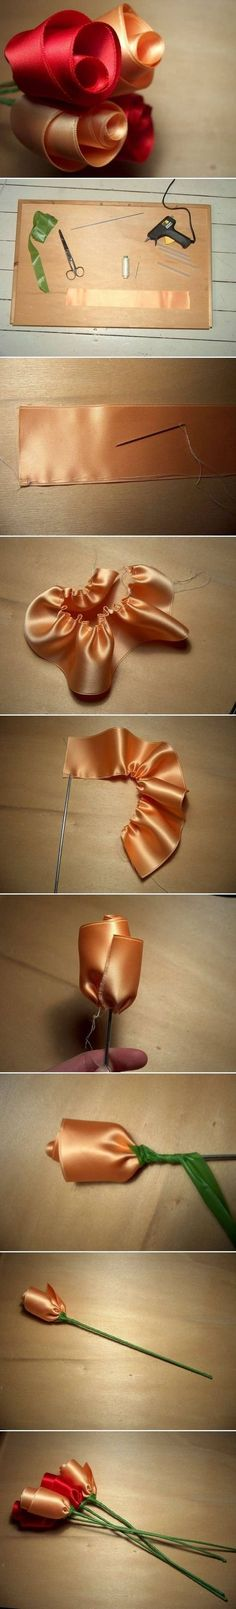 DIY Quick Satin Ribbon Roses --I made my wedding bouquet & bridesmaids flowers out of these, using material from my gown that I made & their dresses, too--back in 1974 --no patterns then, I made my own! by avis